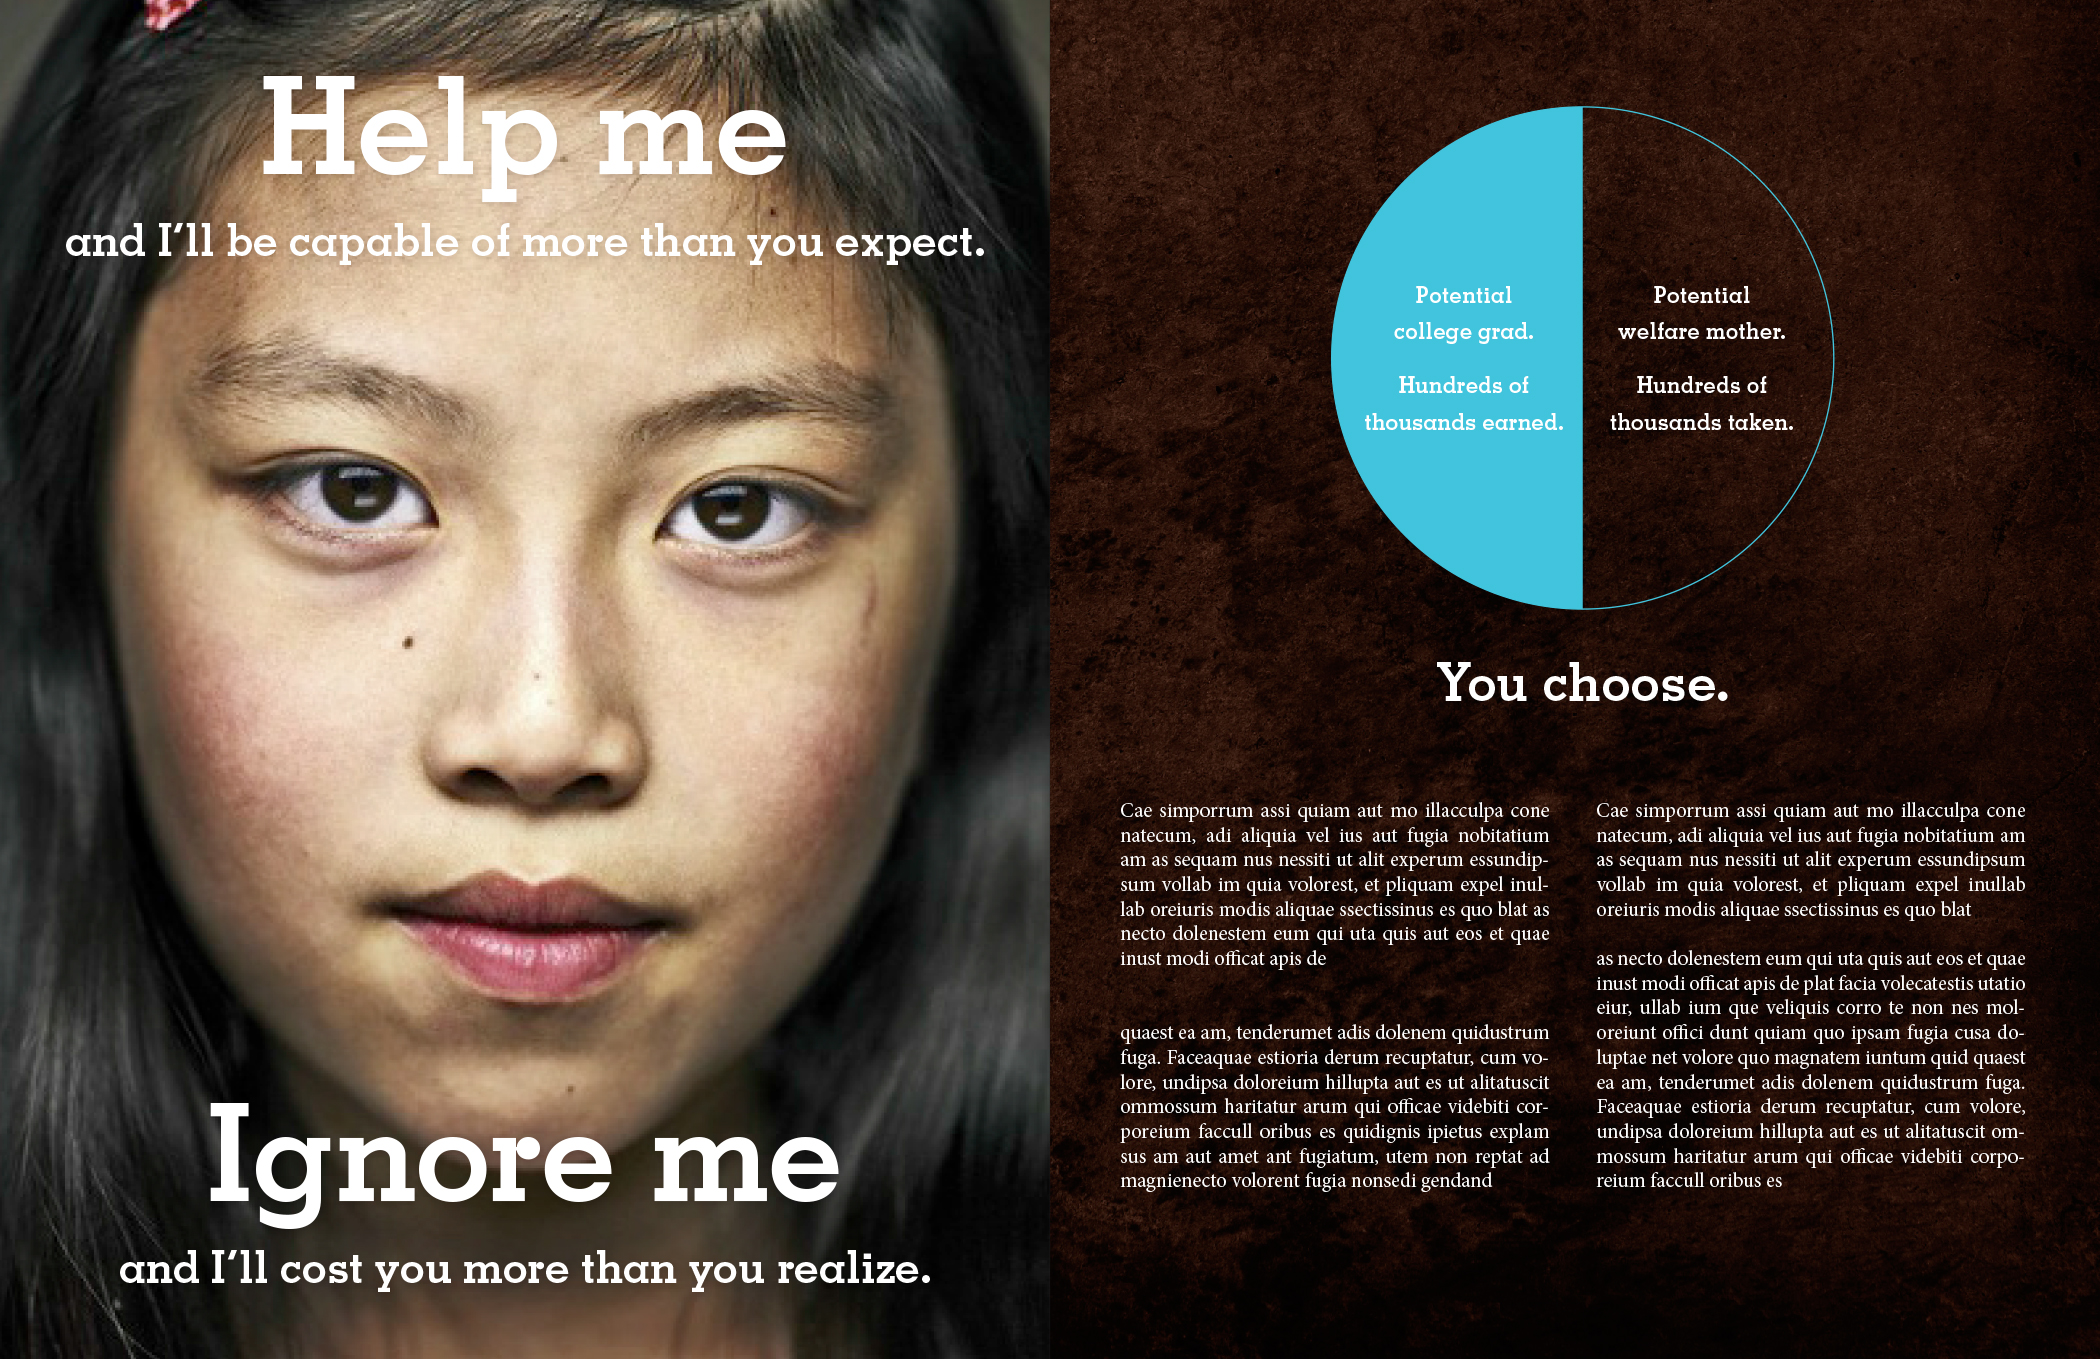 unbranded donor campaign